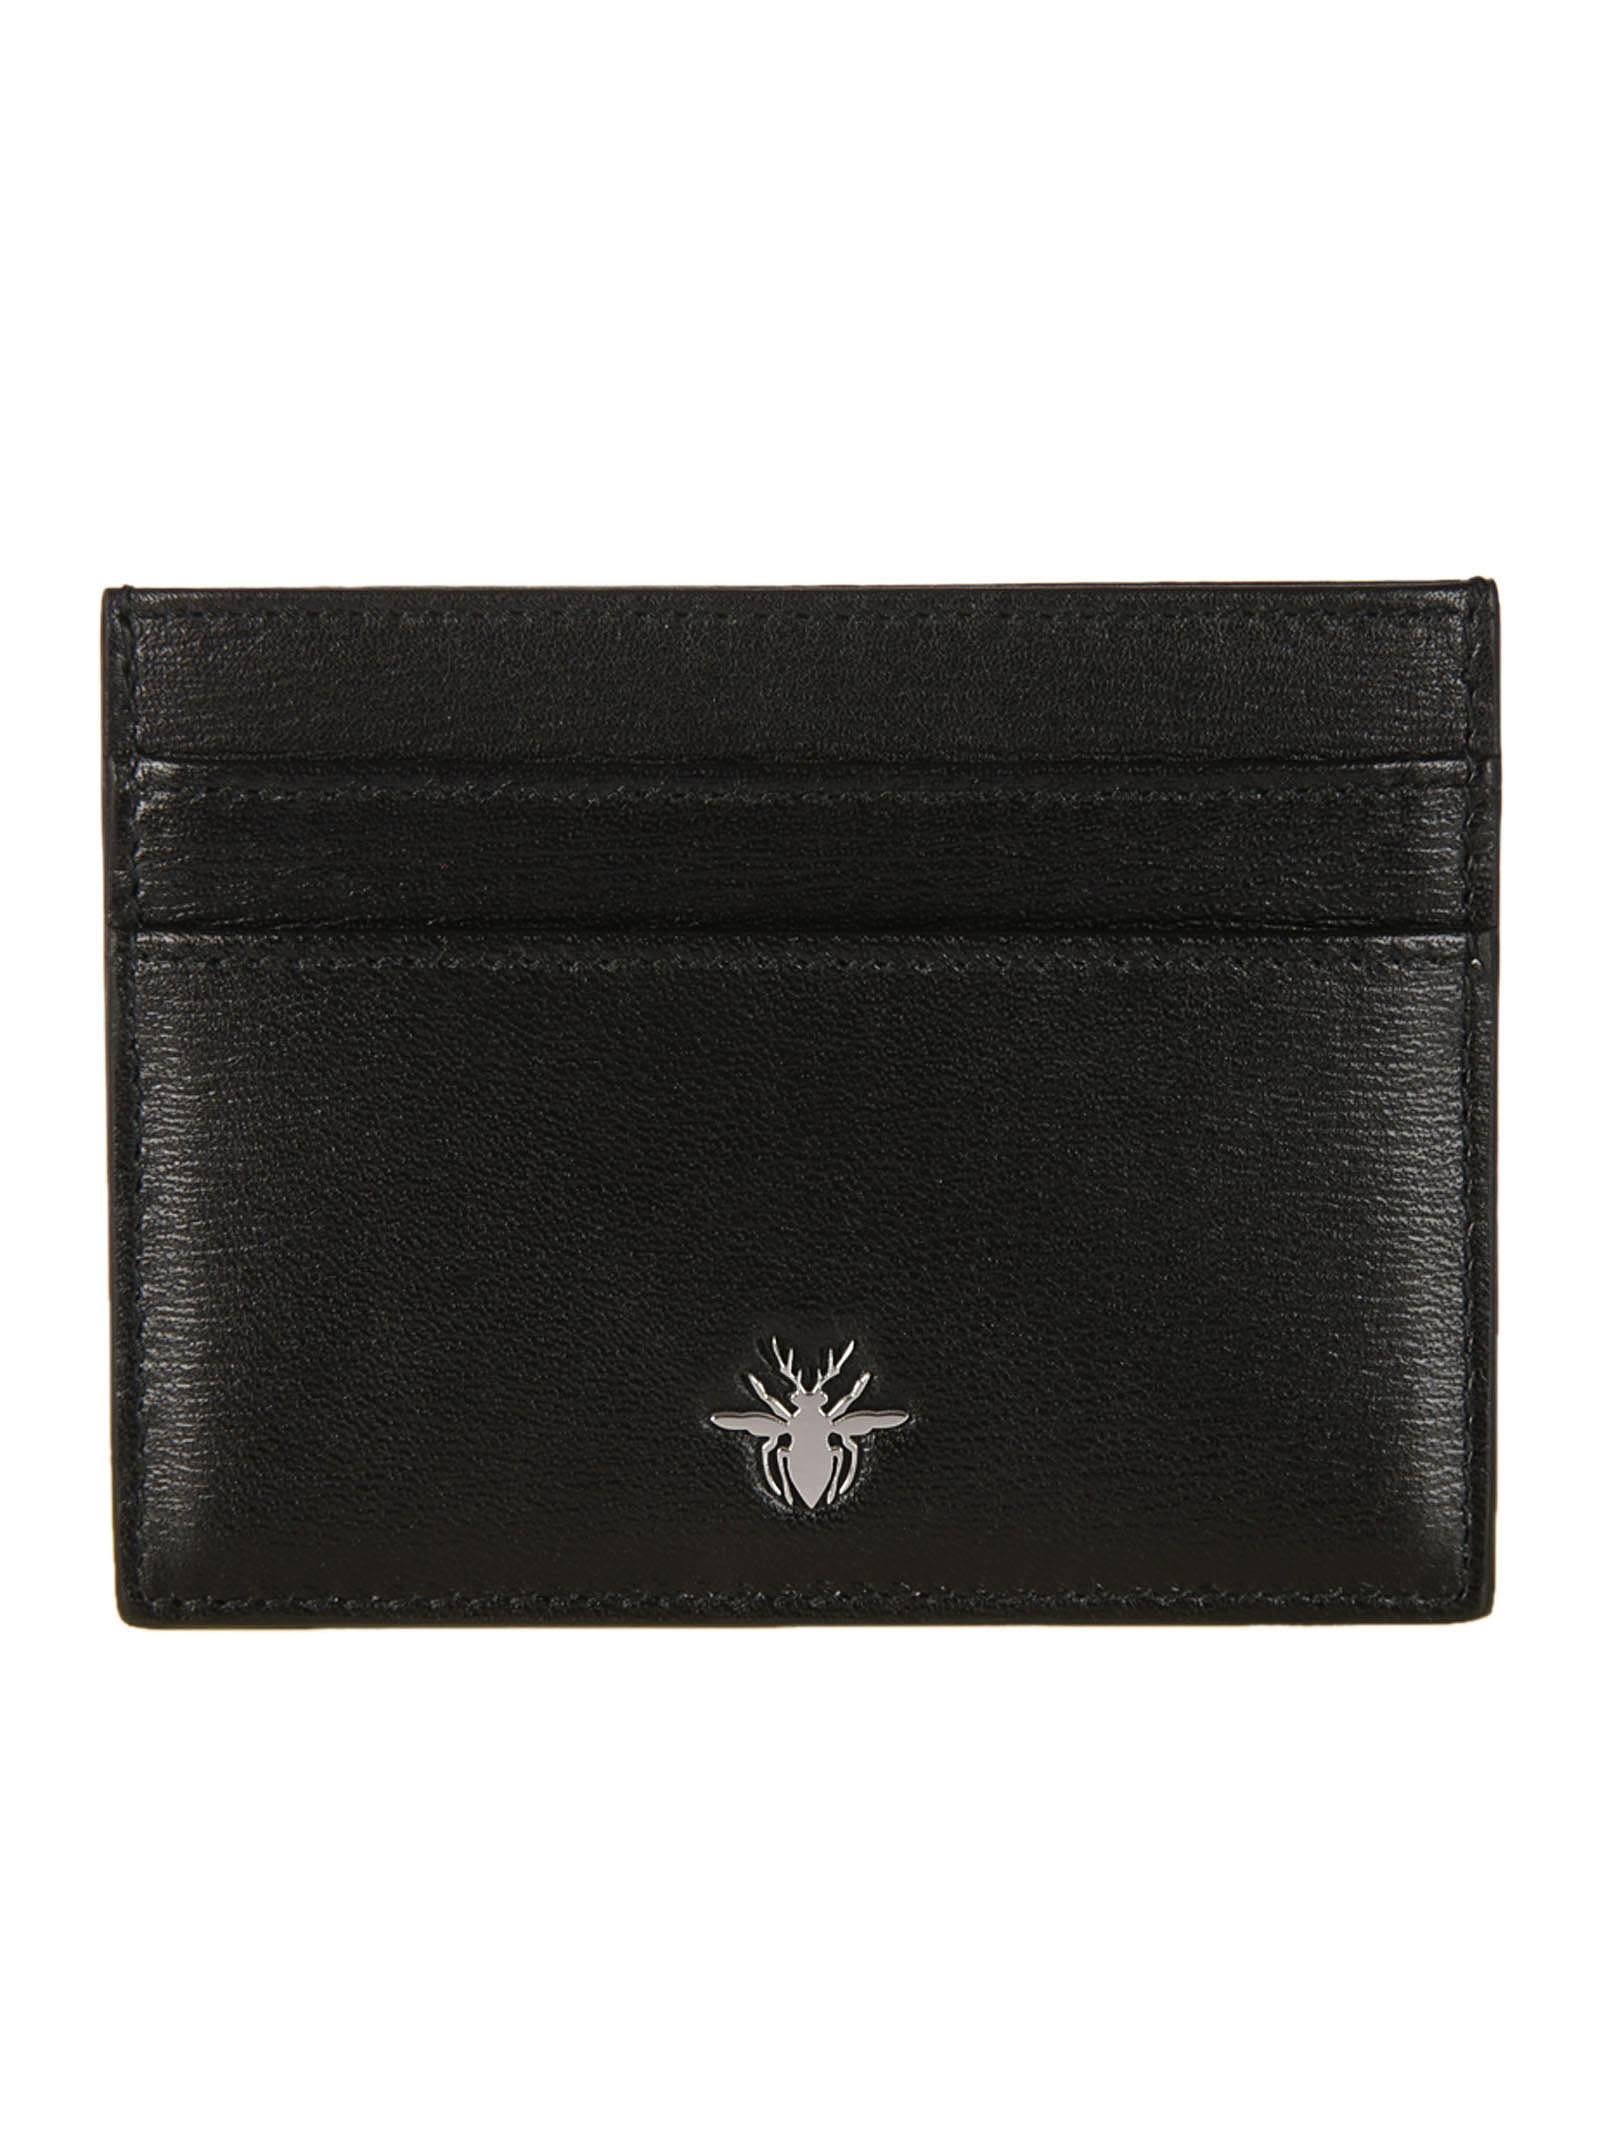 Dior Homme Bee Signature Card Holder